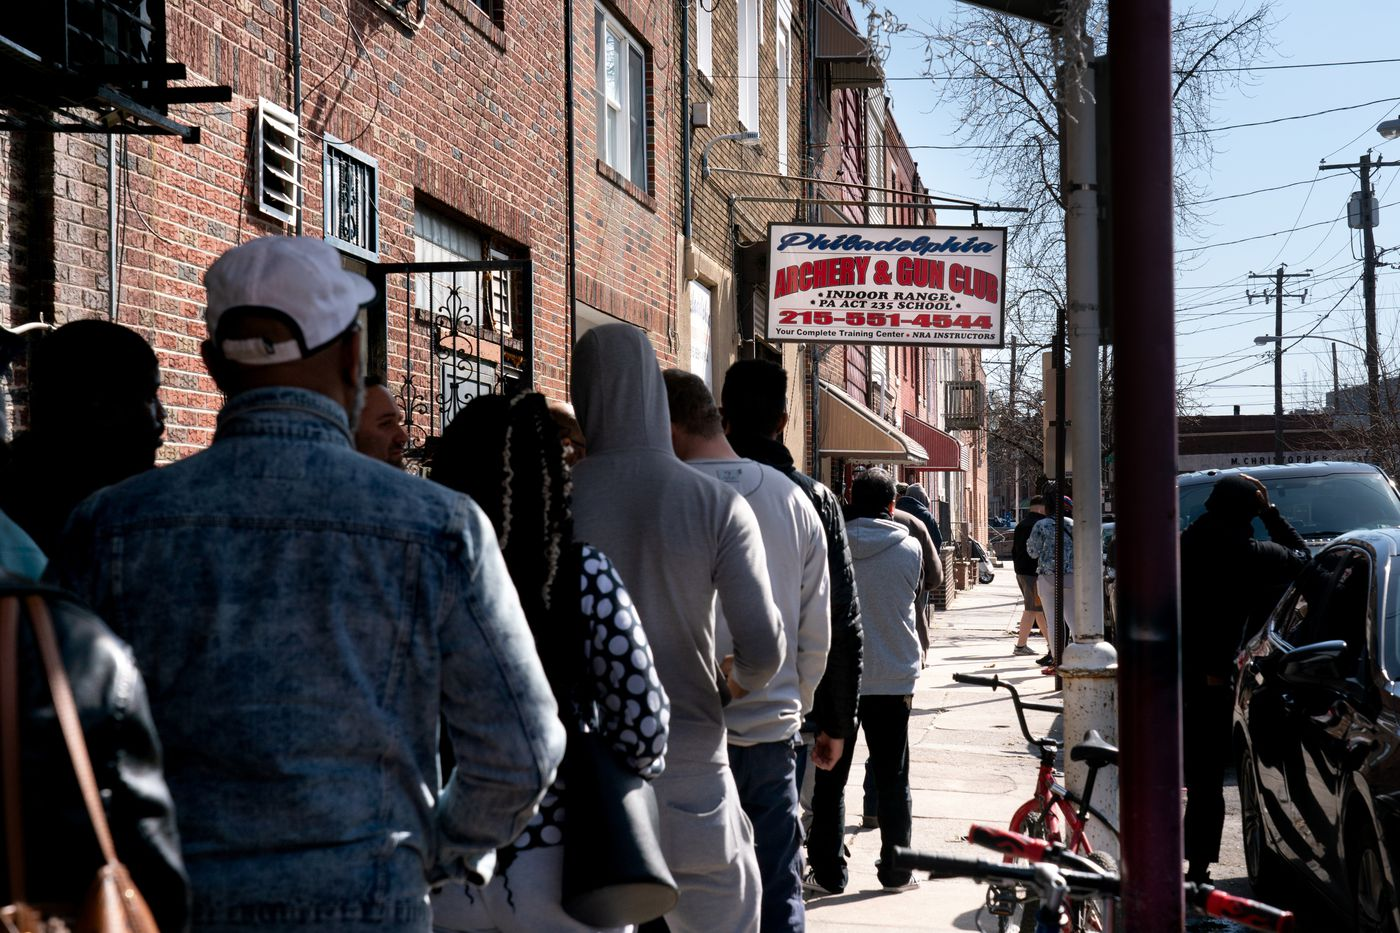 A line of people wait outside of the Philadelphia Gun and Archery Club, in South Philadelphia, March 18, 2020. As of Wednesday morning, nearly 6,500 cases of the coronavirus have been reported in the United States, and 114 people had died. Cities around the United States, including Philadelphia, are increasing social restrictions in an attempt to slow the virus' spread.